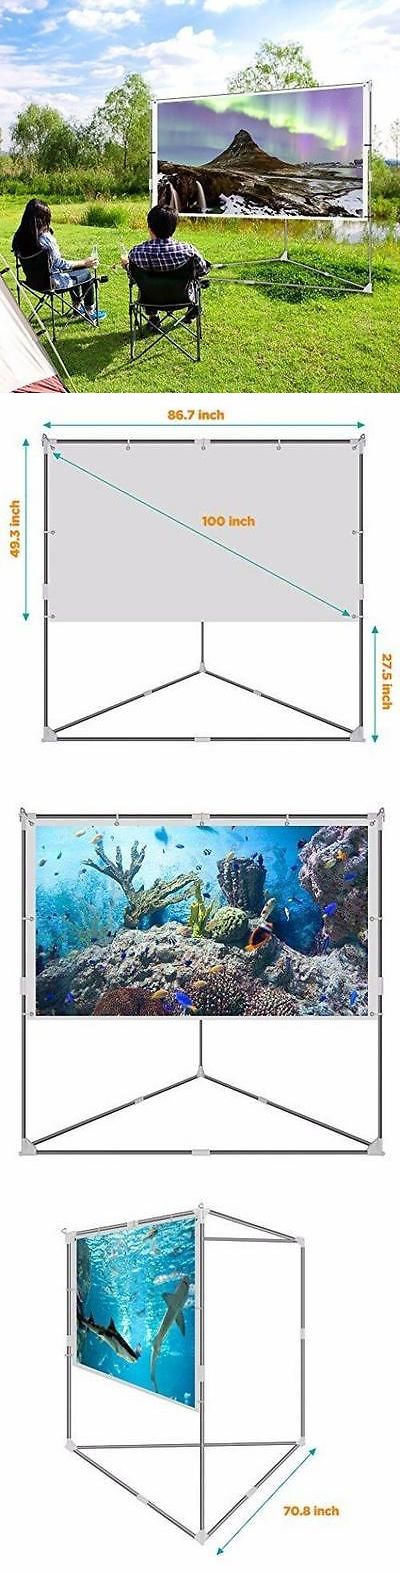 Projection Screens and Material: Video Projector Screen Outdoor Movie Portable Mobile Large Home Backyard Patio -> BUY IT NOW ONLY: $132.1 on eBay!